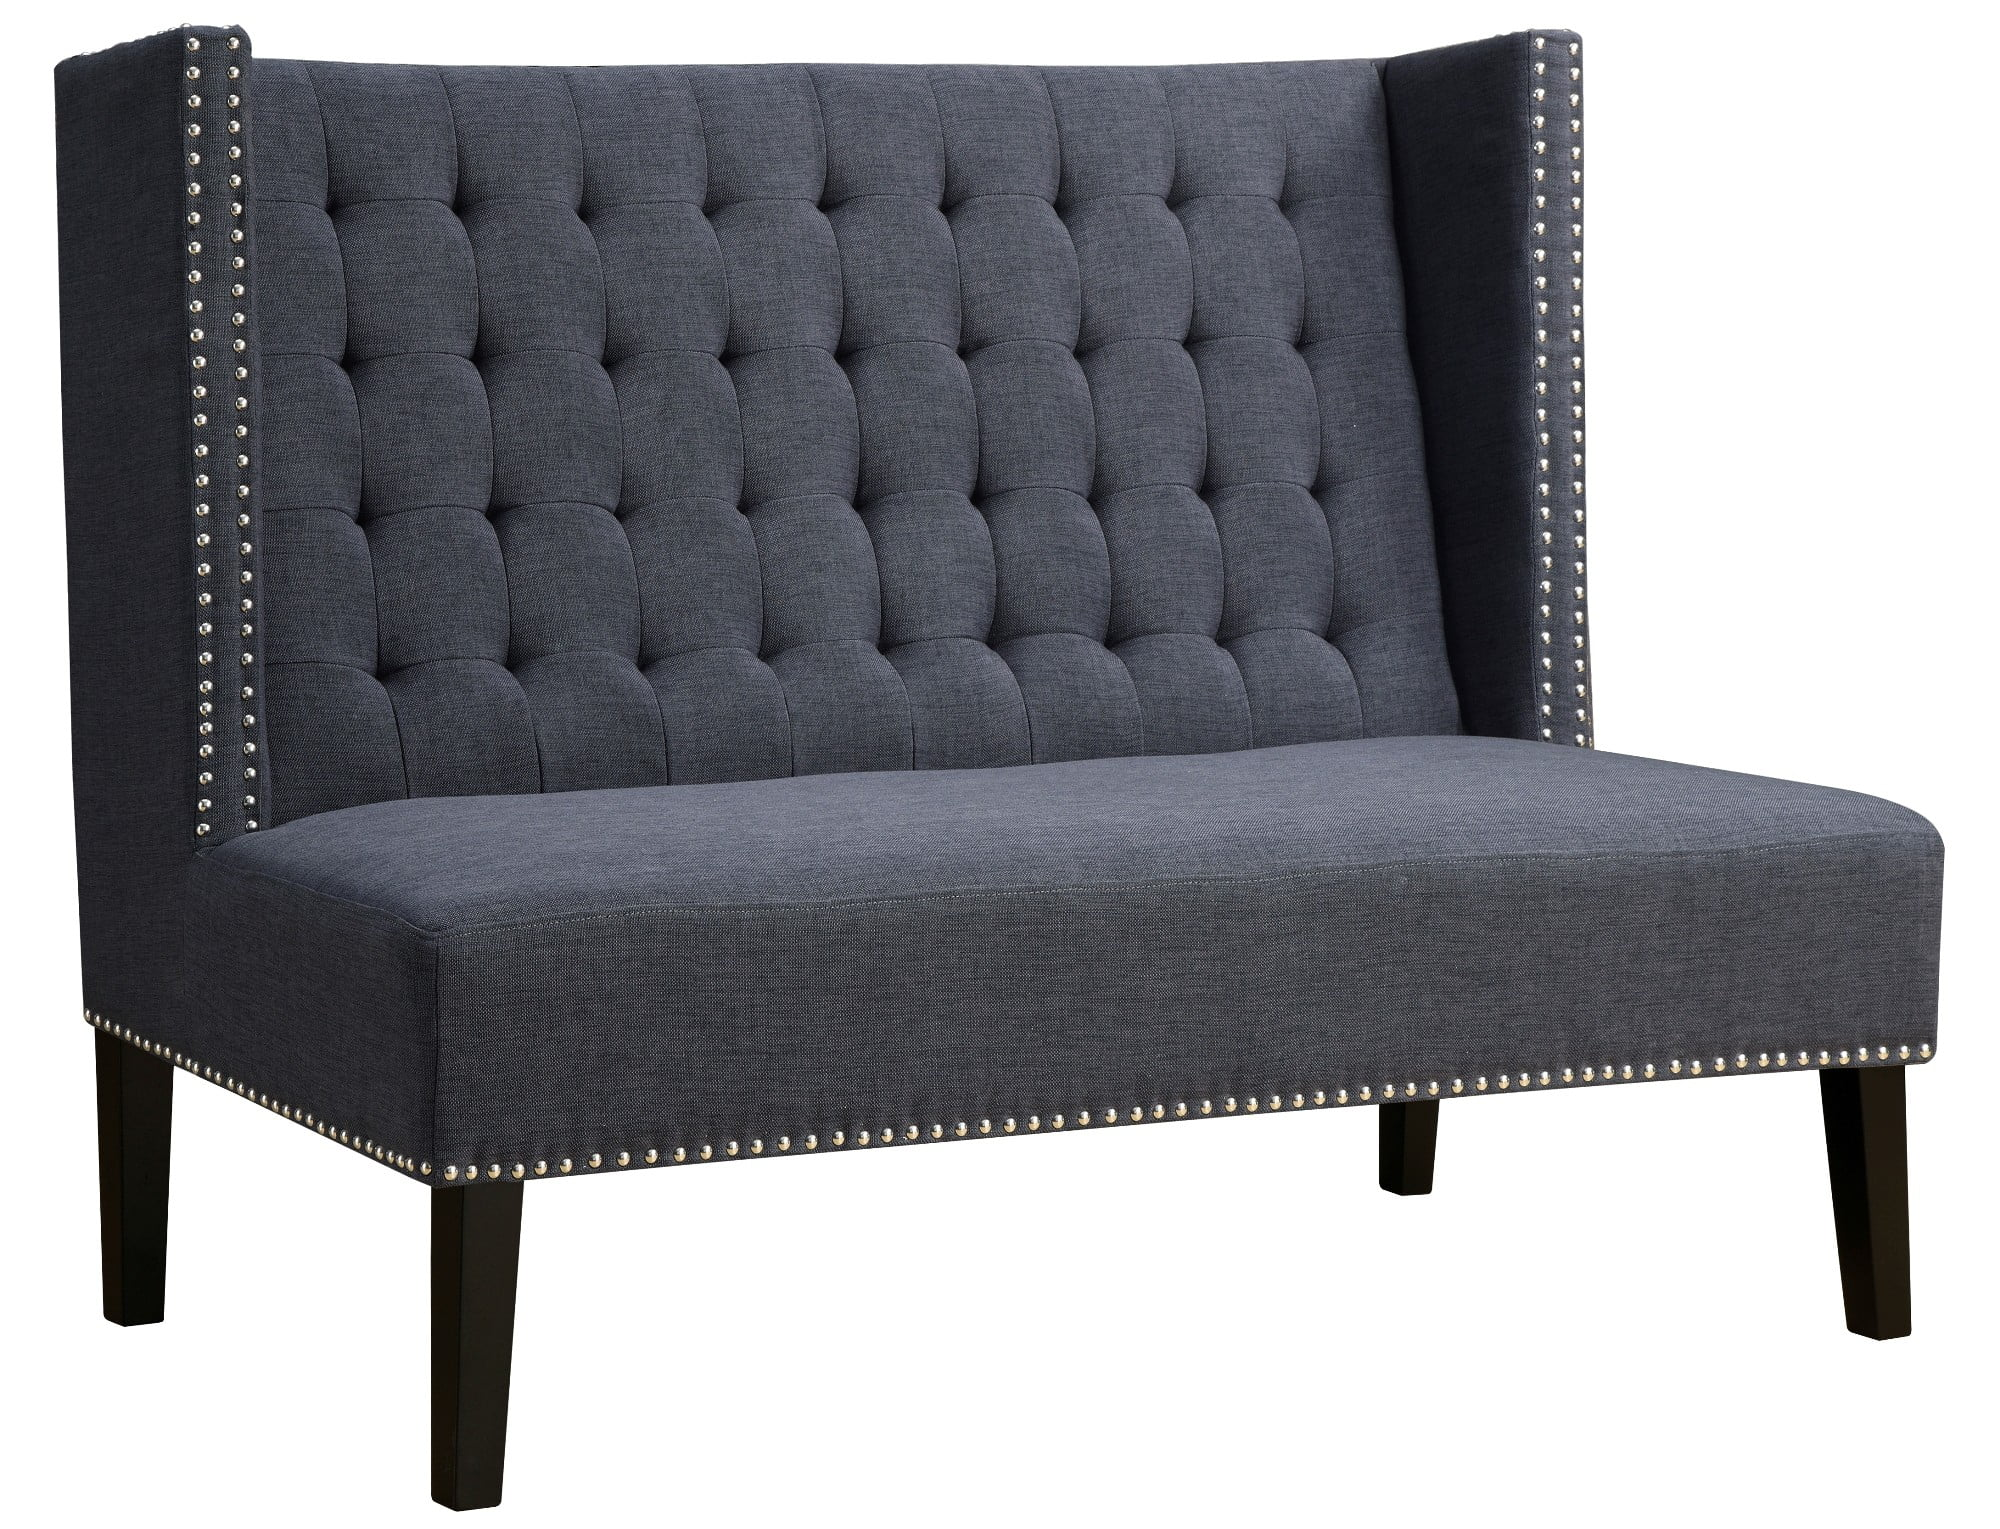 Halifax grey linen banquette bench from tov tov 63114 Banquette bench